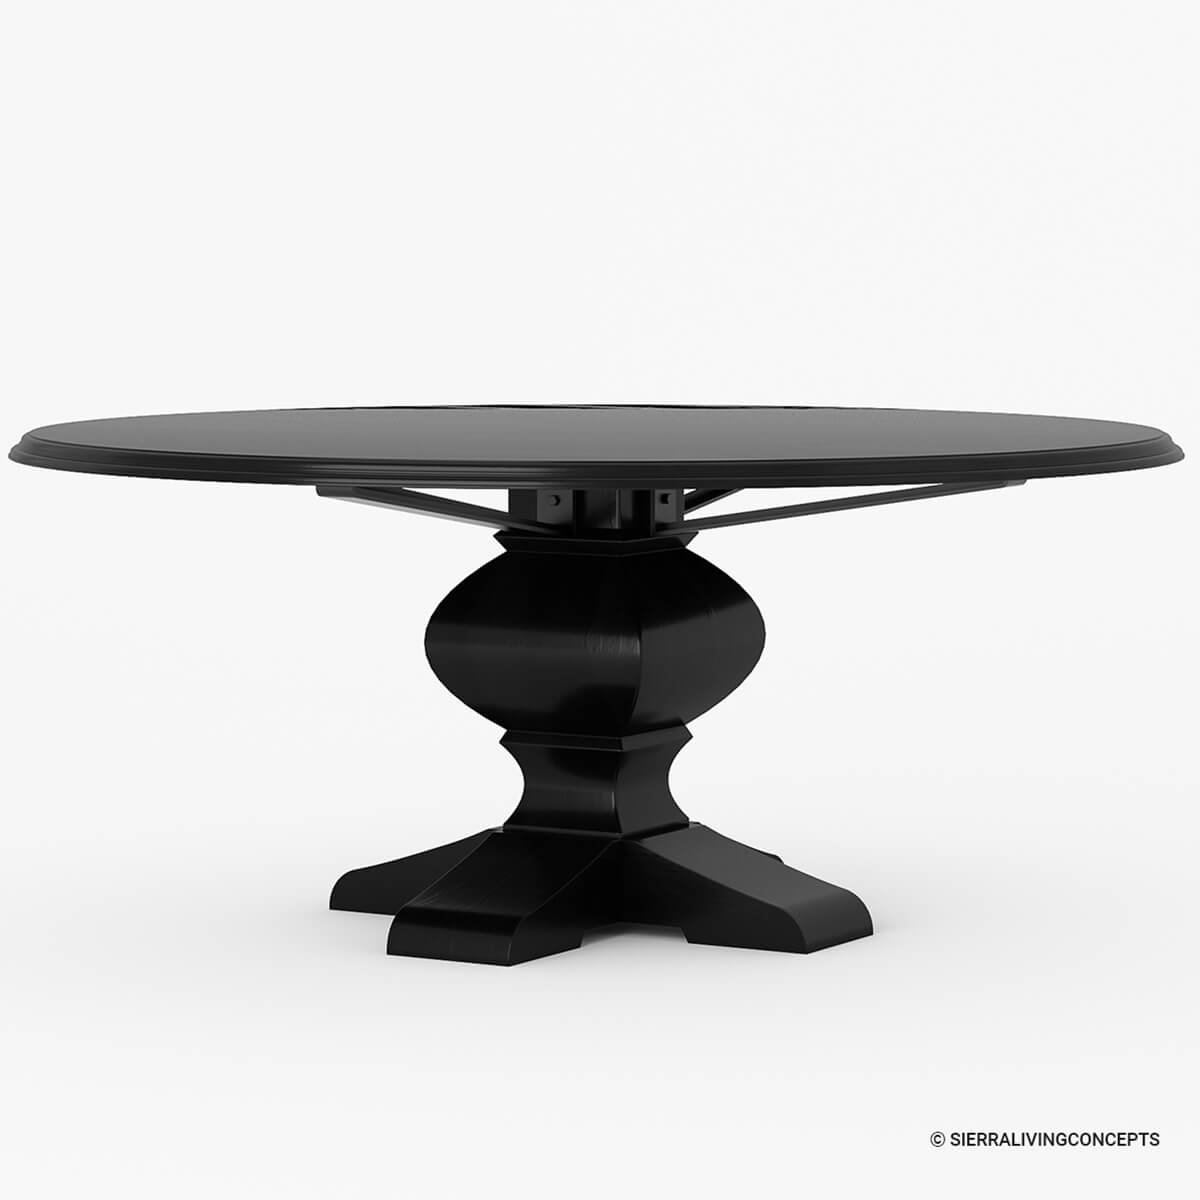 ... Tables Large 84 Round Dining Table For 10 People Rustic Solid Wood